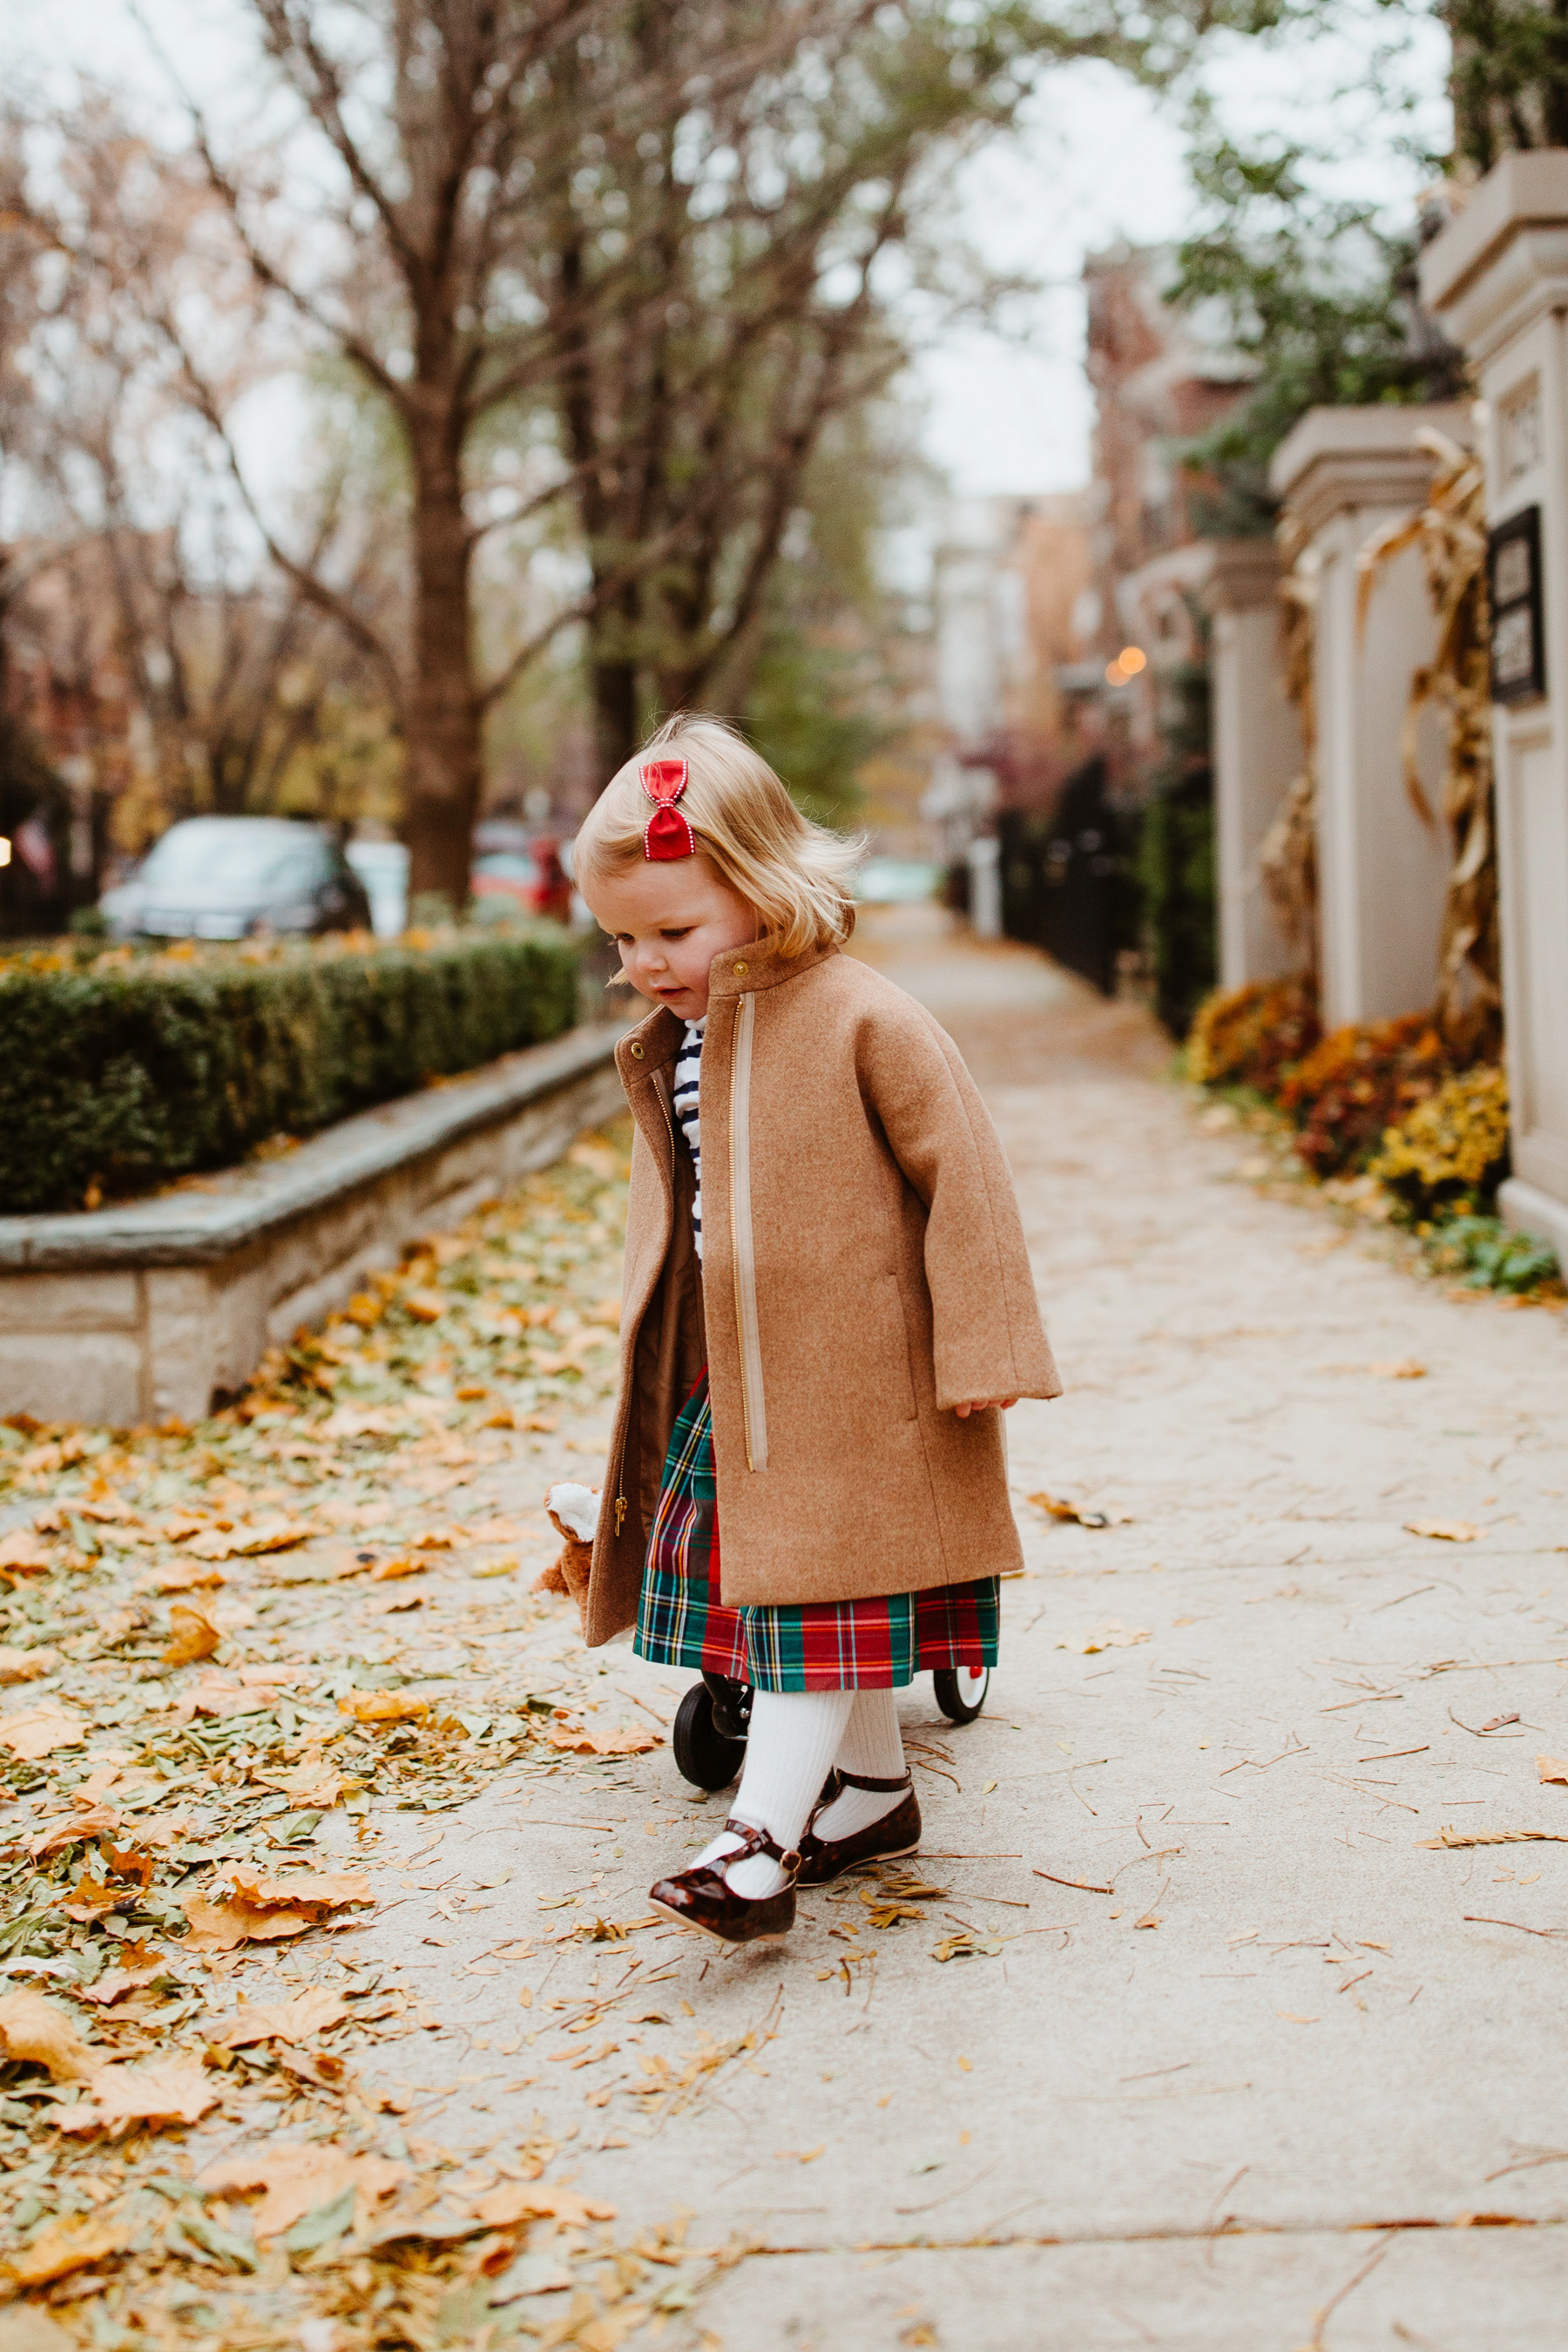 Emma's Outfit: Plaid Skirt, Toddler Cocoon Coat, Striped Turtleneck